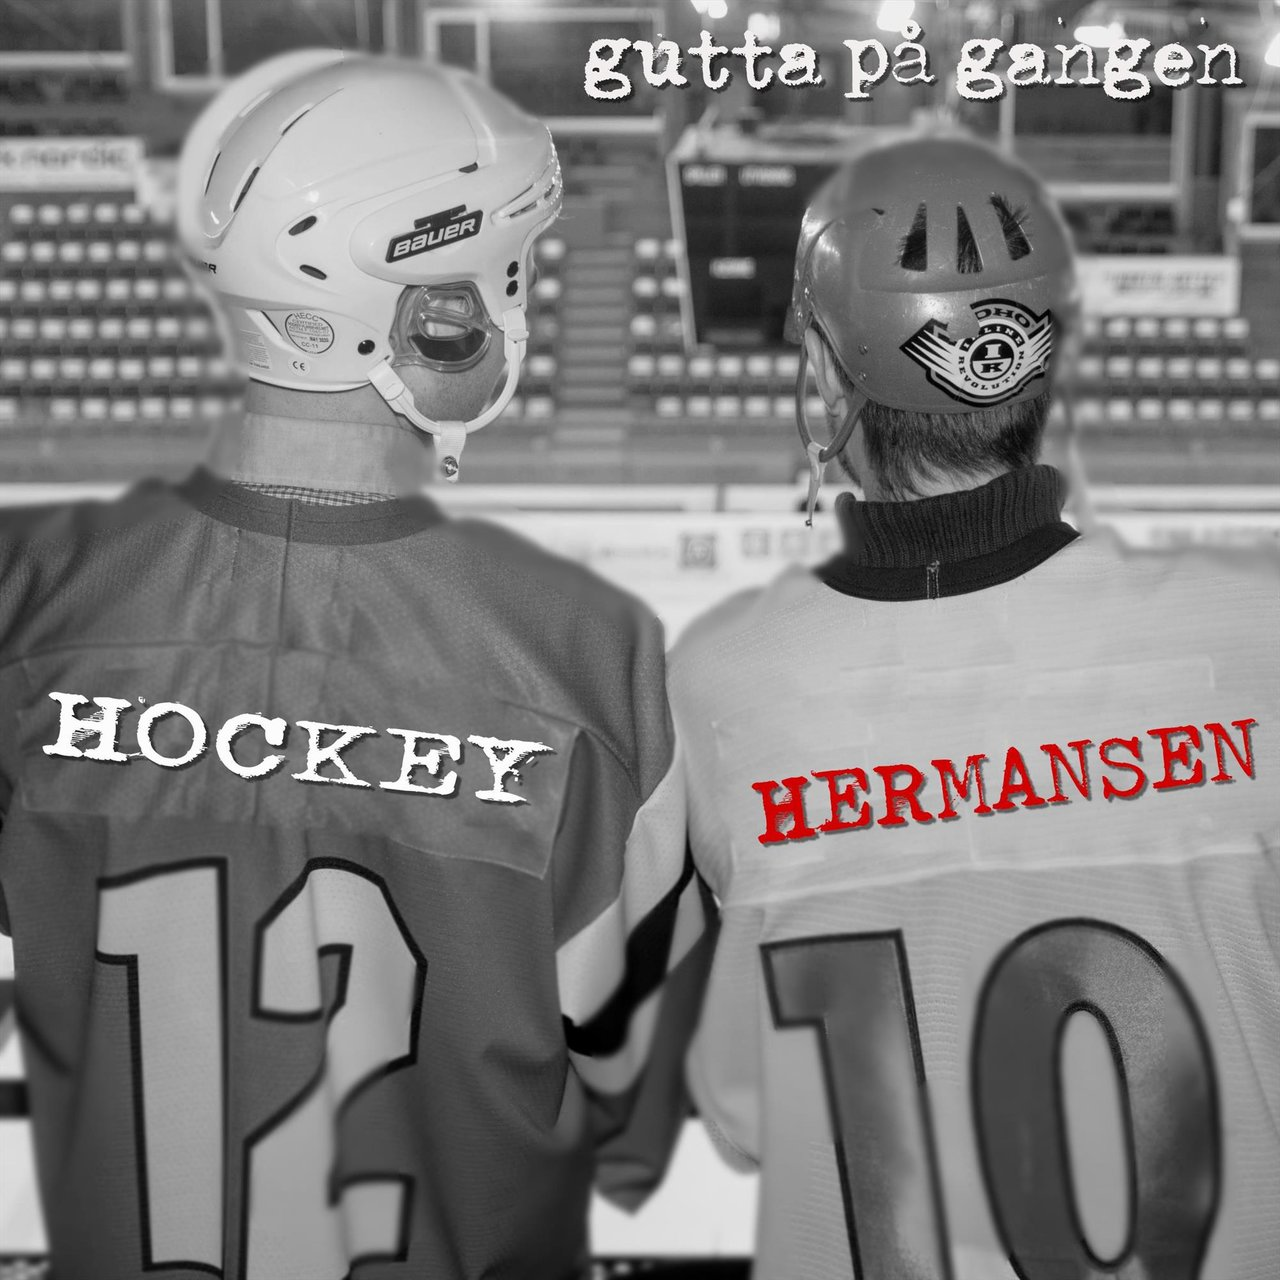 Hockey Hermansen